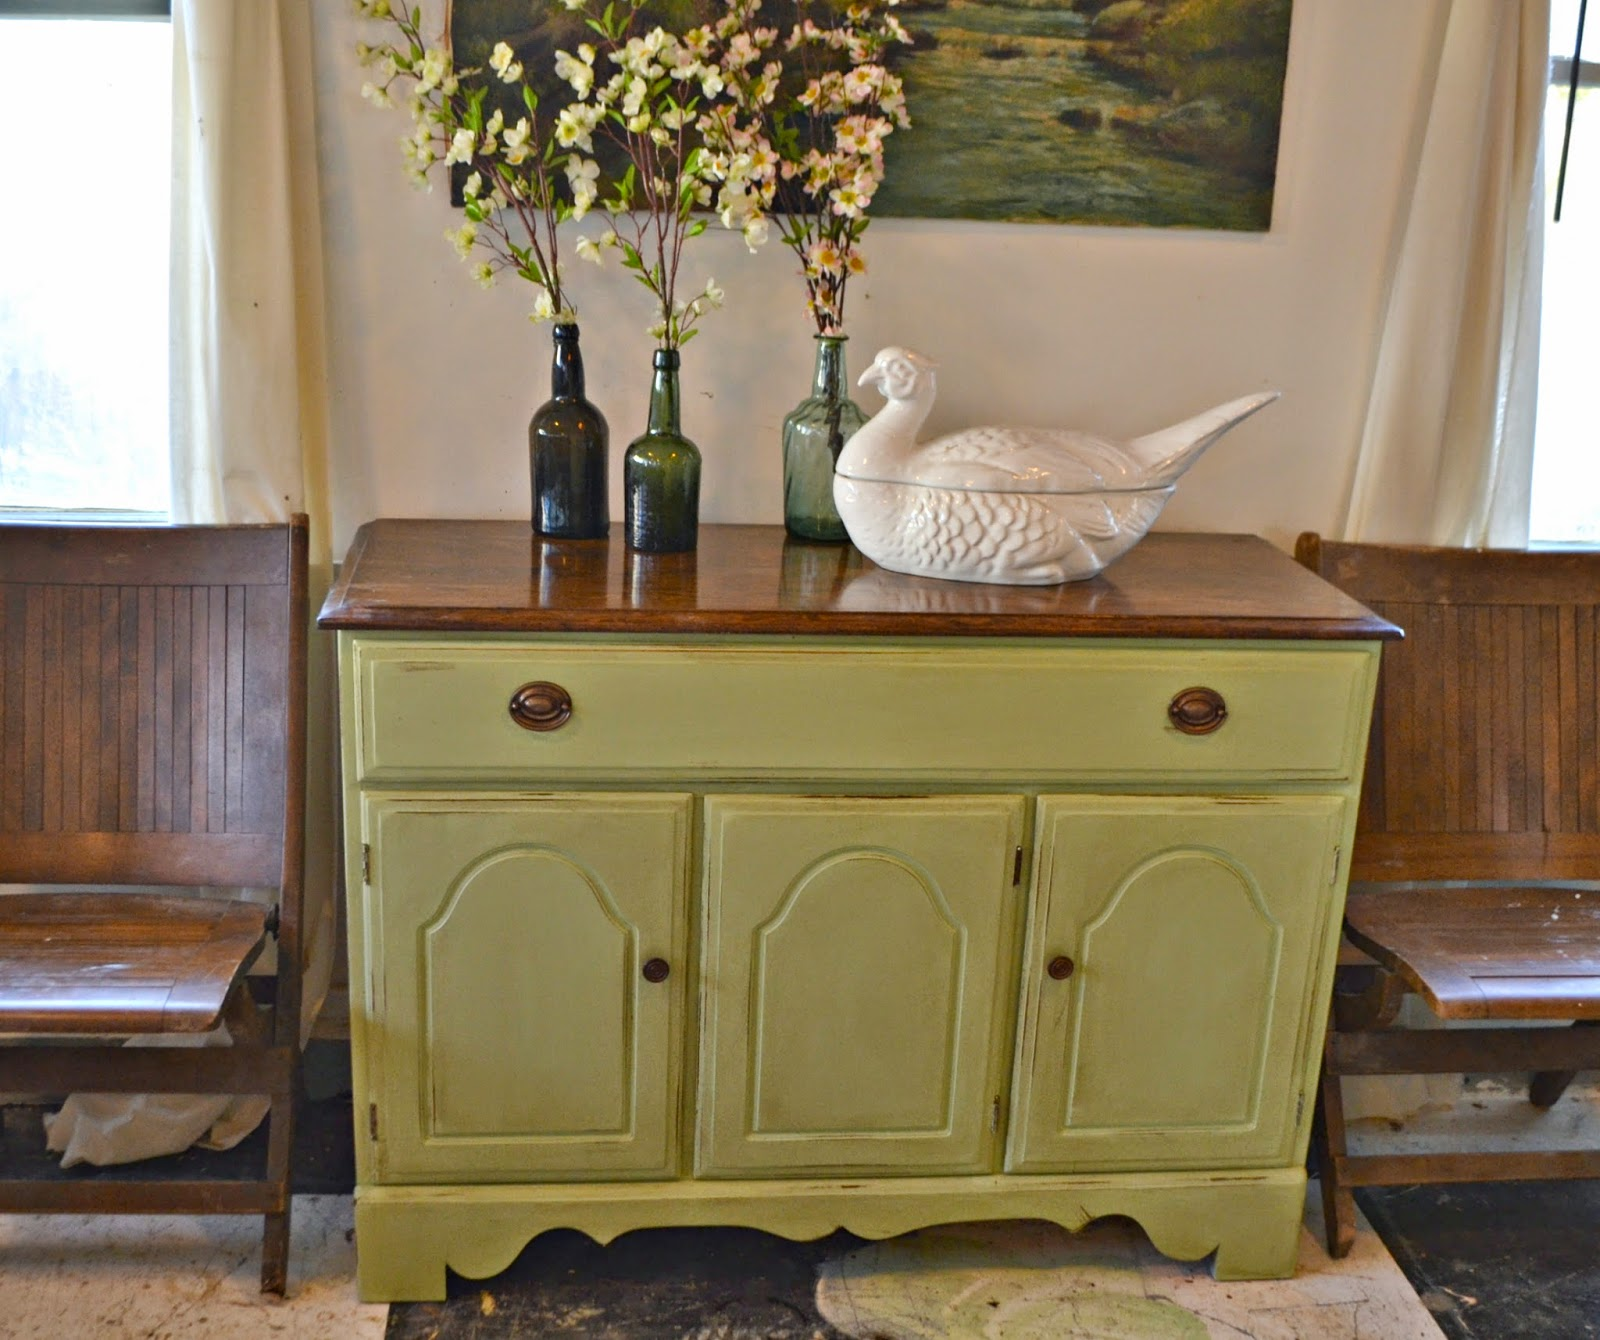 heir and space: a temple stuart sideboard in pale green